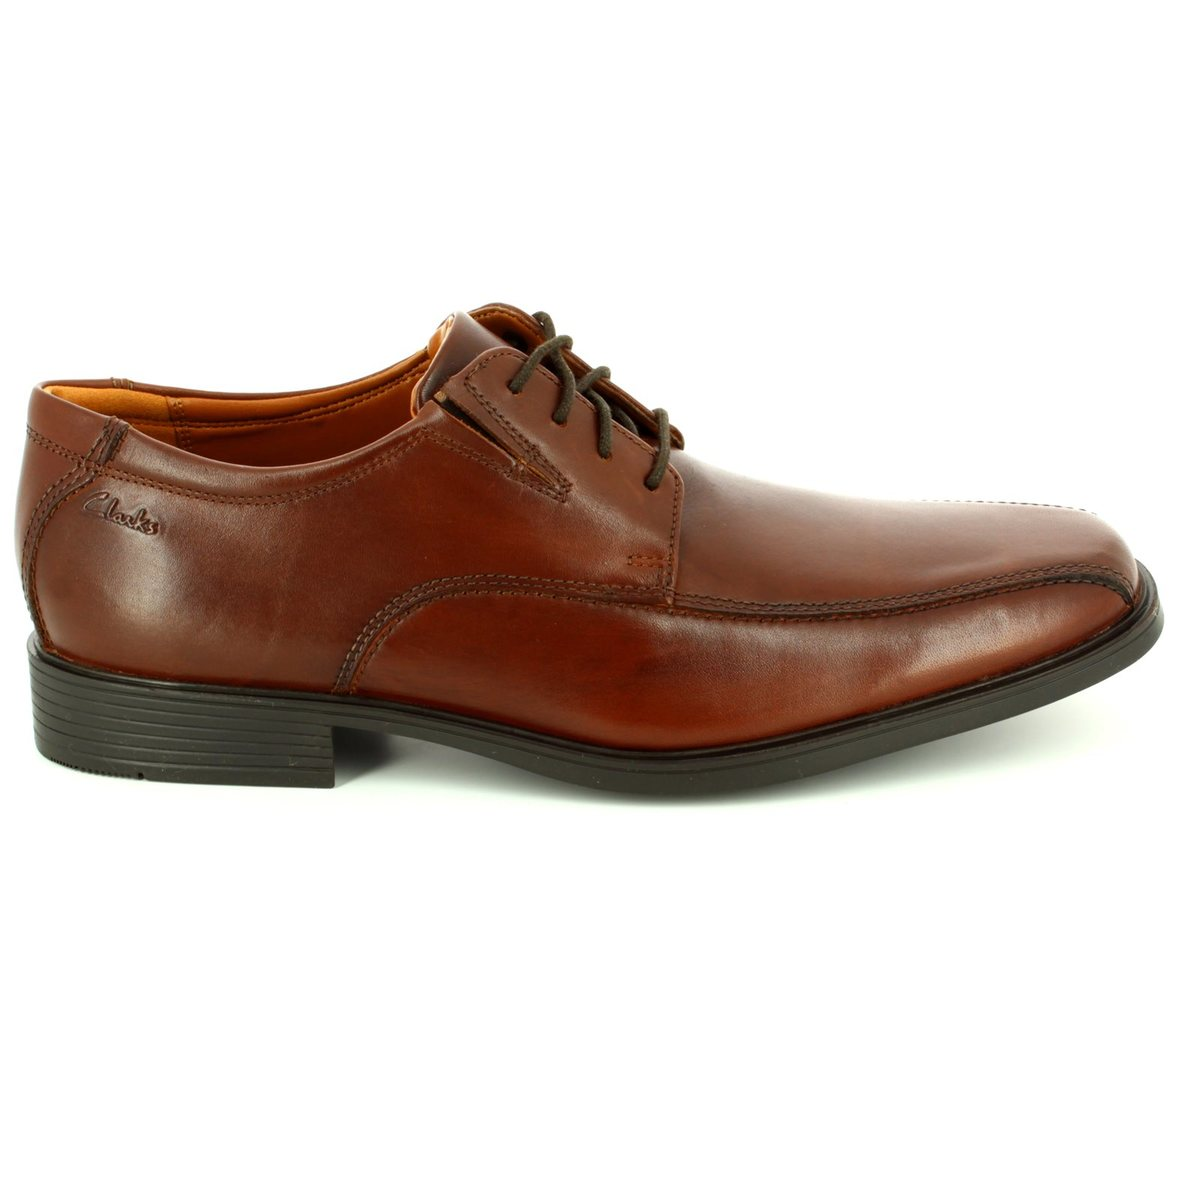 Tilden Walk Shoes